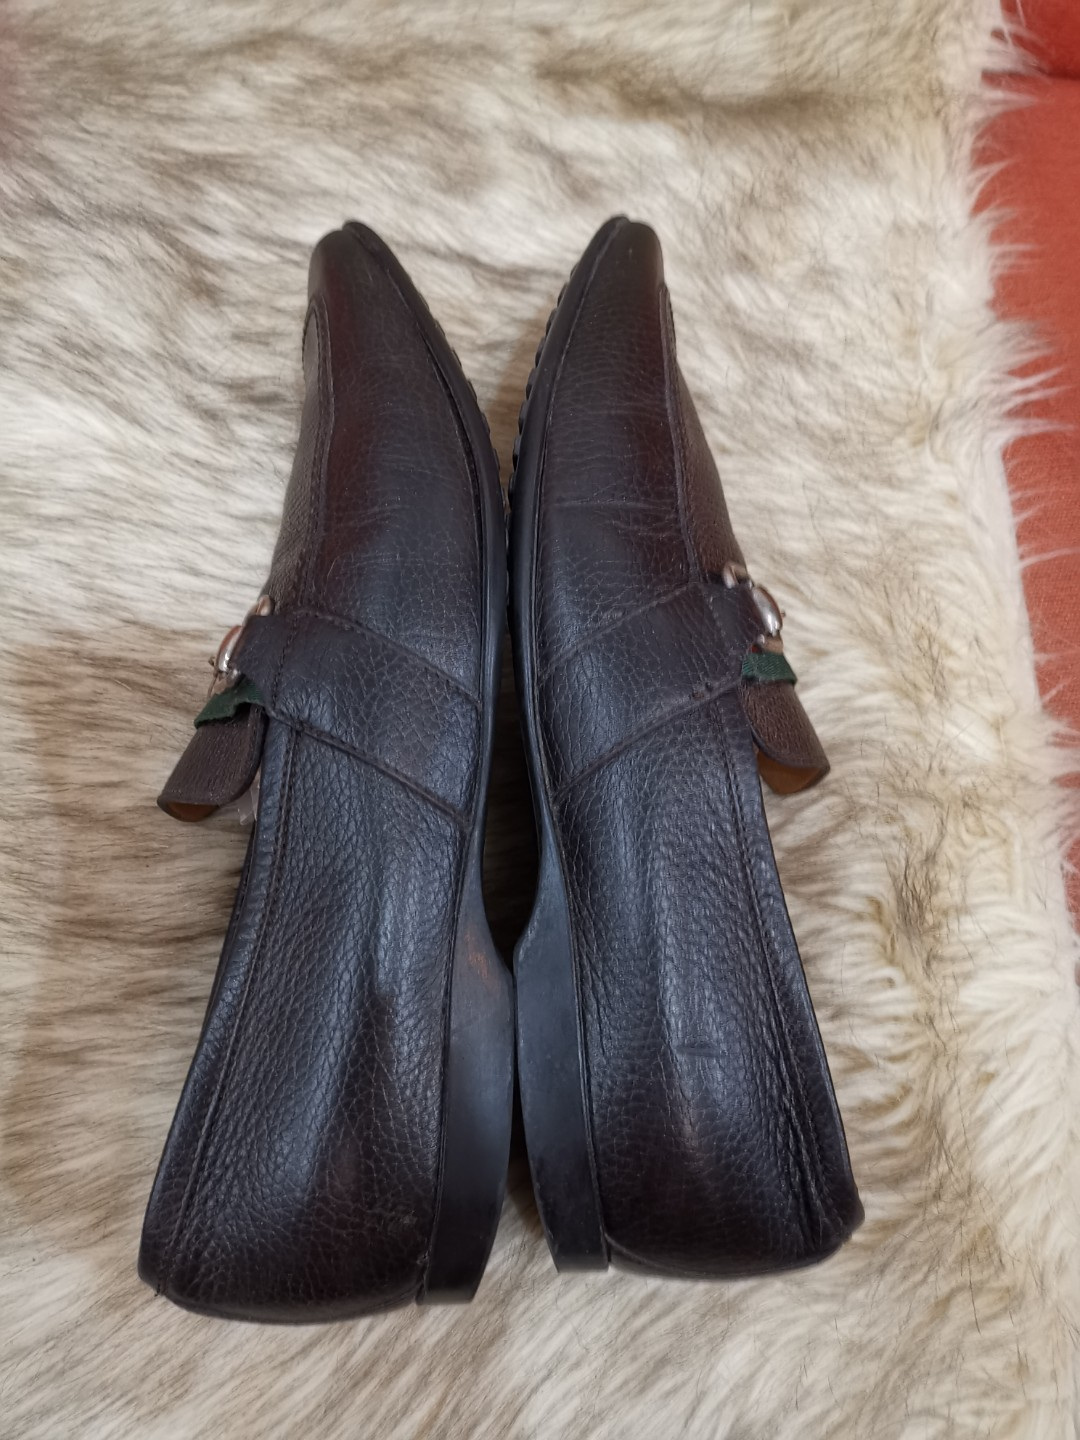 3dc2152b2 Authentic Gucci Horsebit Mens Shoes size 40.5 also fits to size 9 to ...